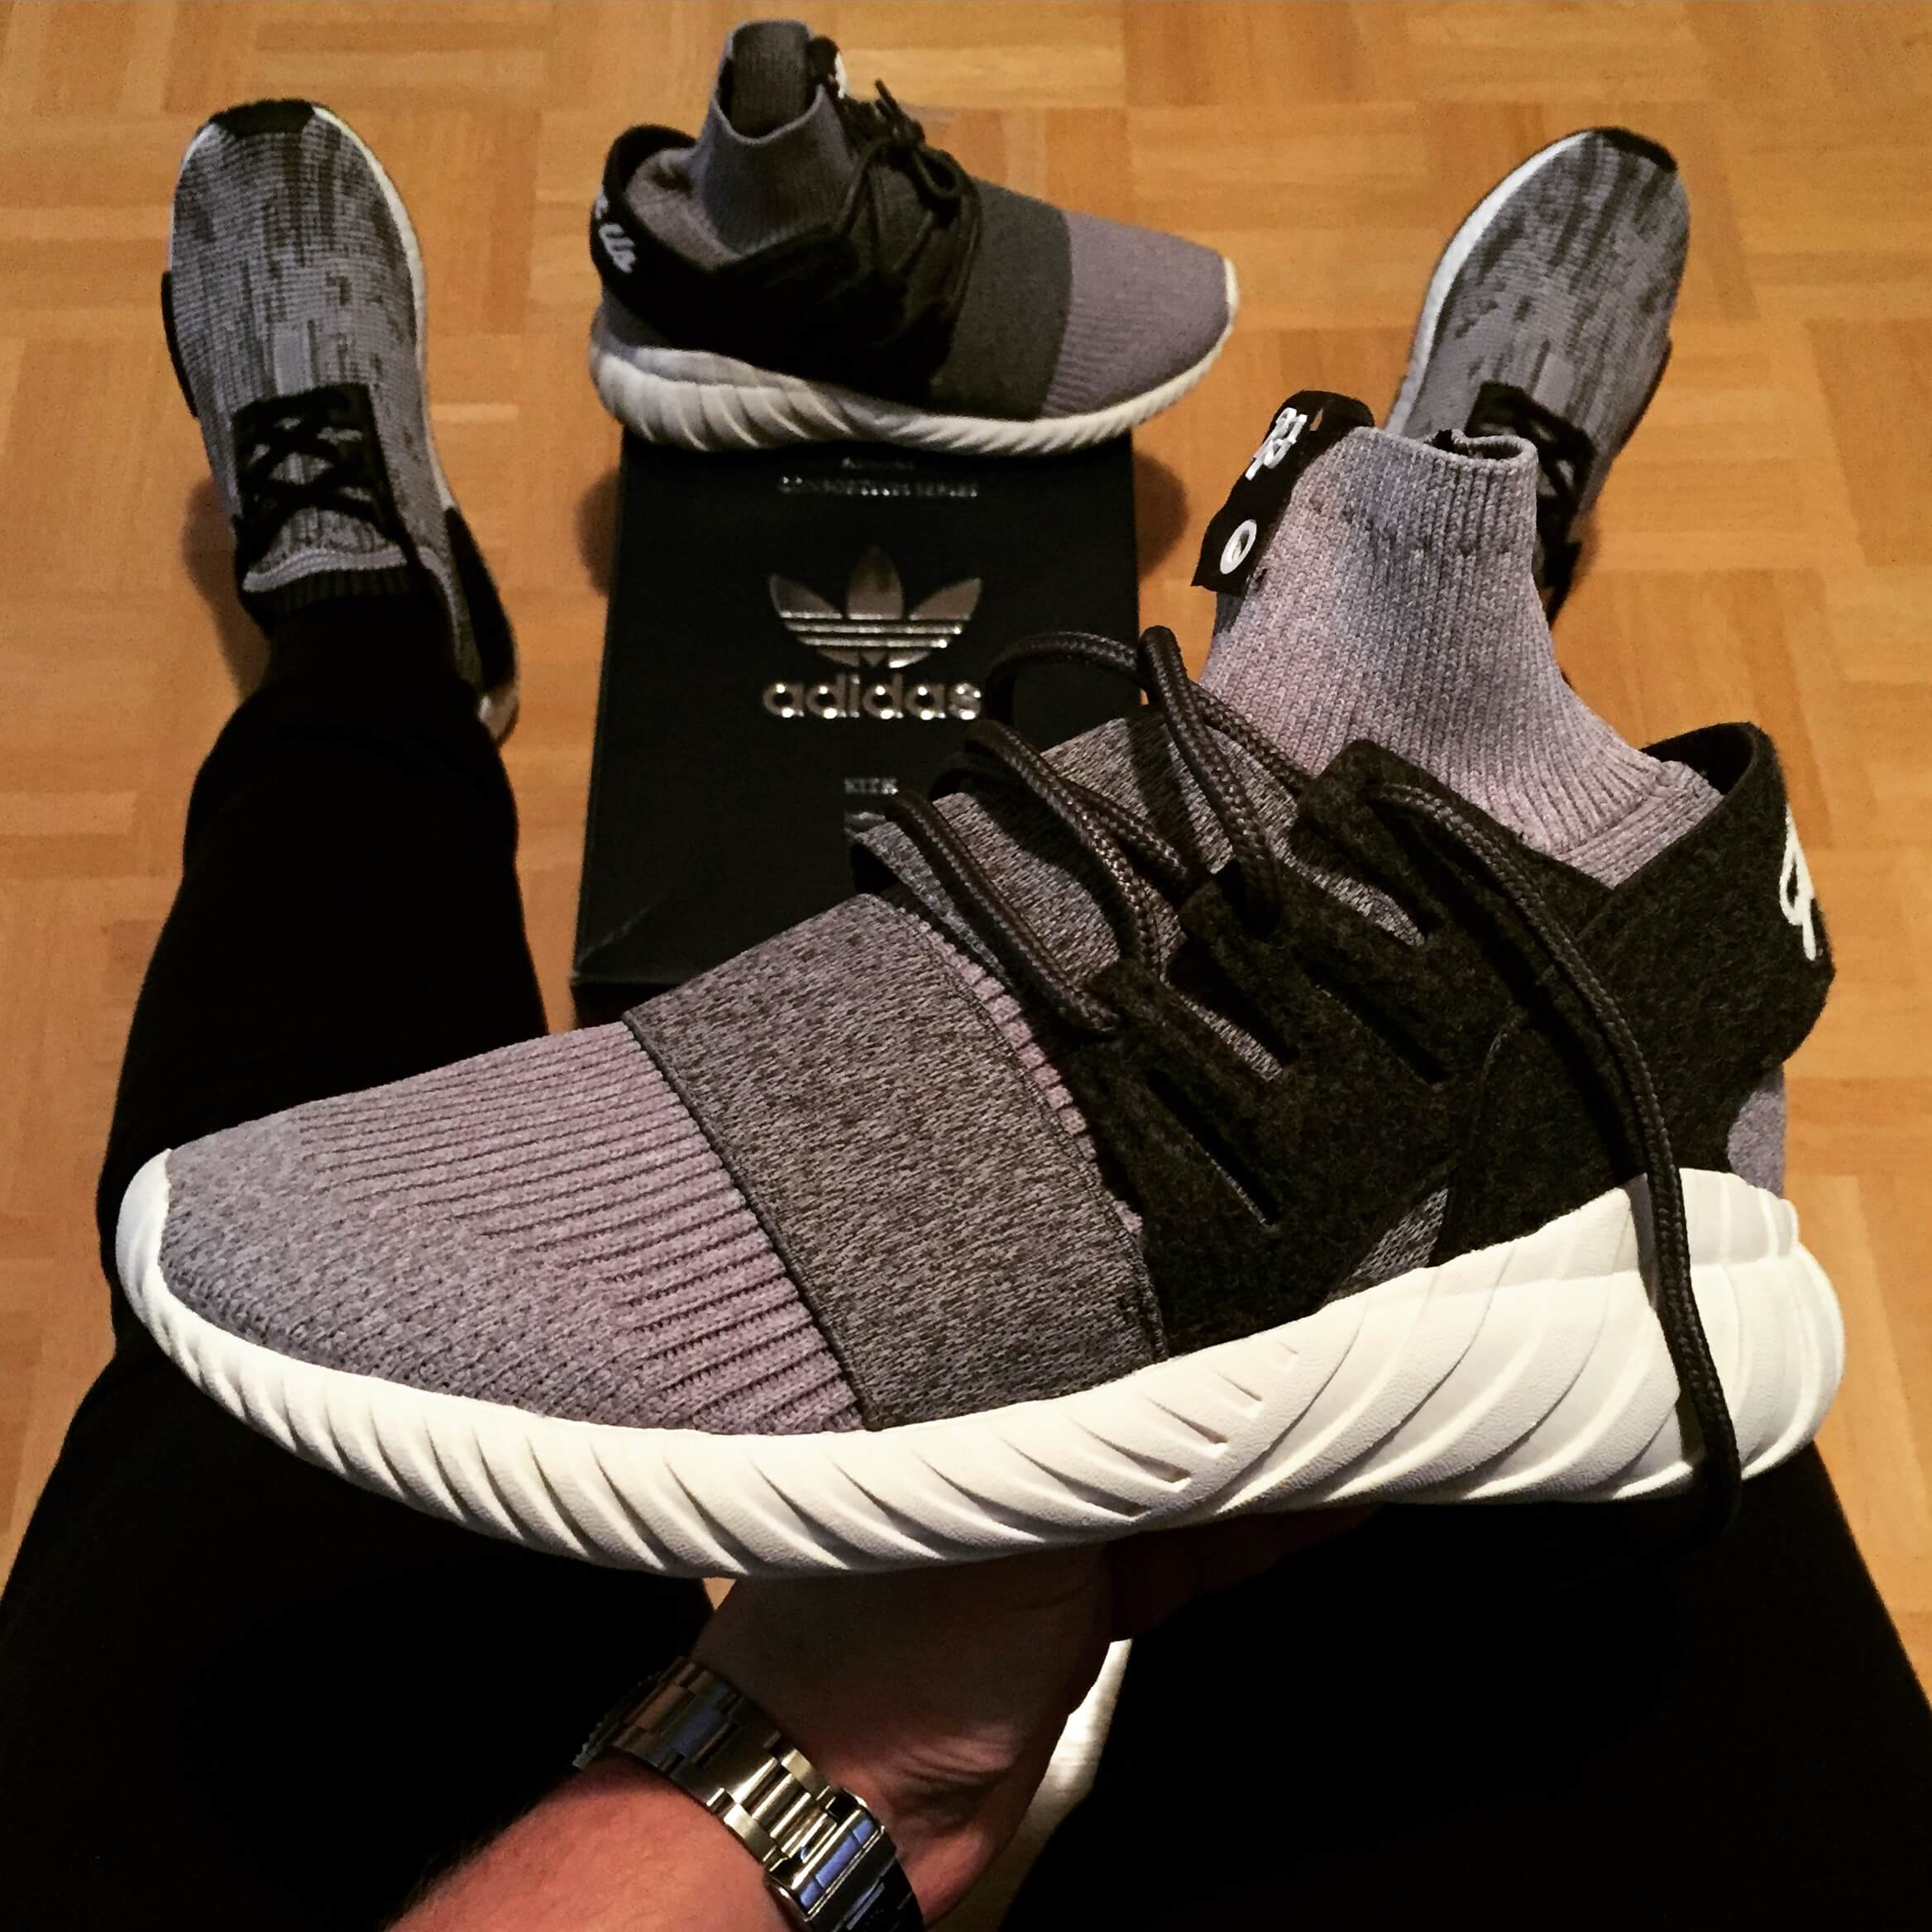 KITH-Adidas-Tubular-Doom-Top-View-Benstah-Onknee